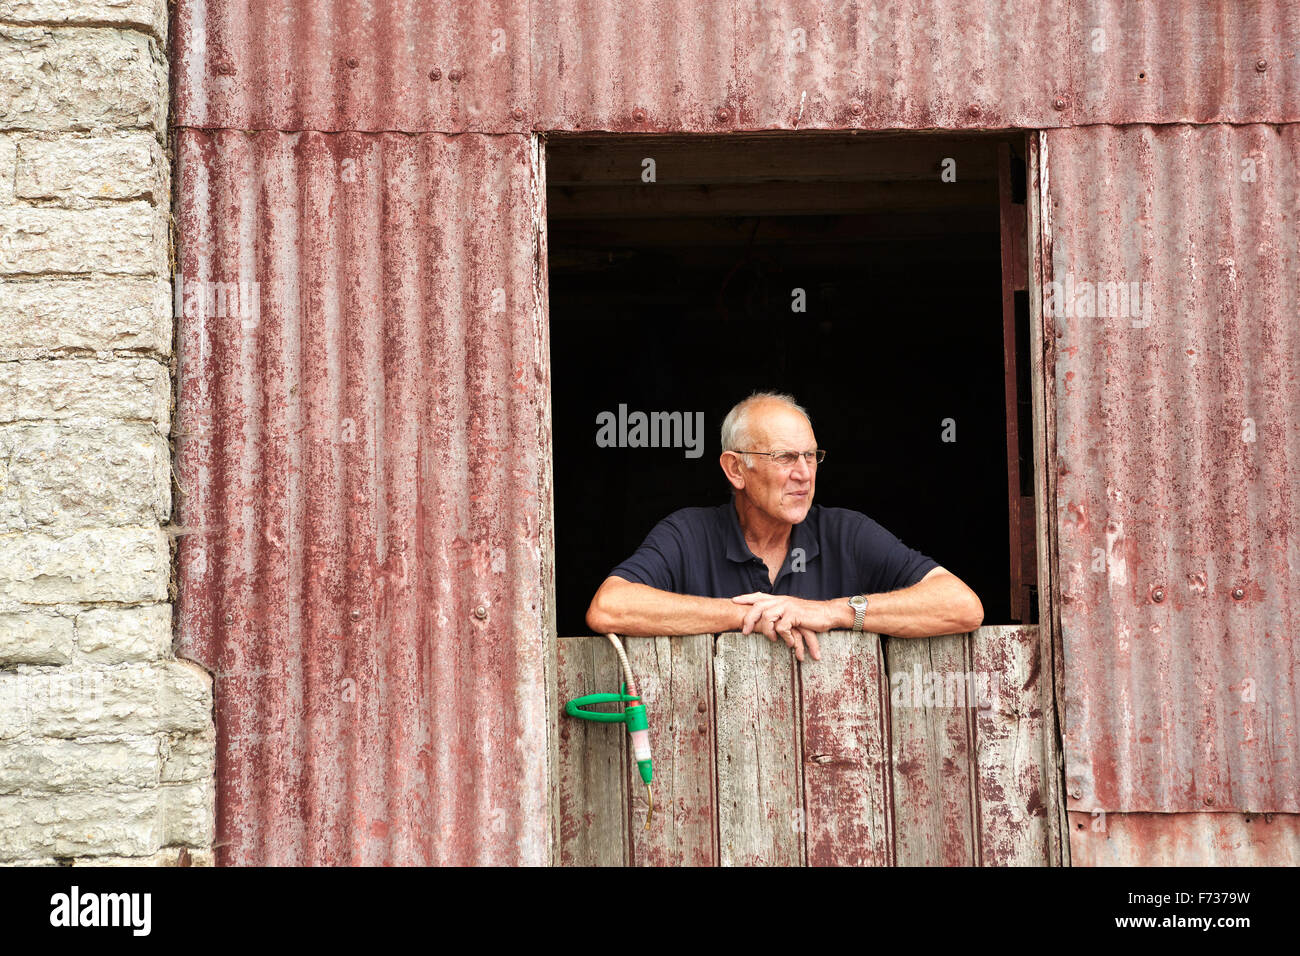 A farmer leaning on a half door looking out of a farm building. - Stock Image